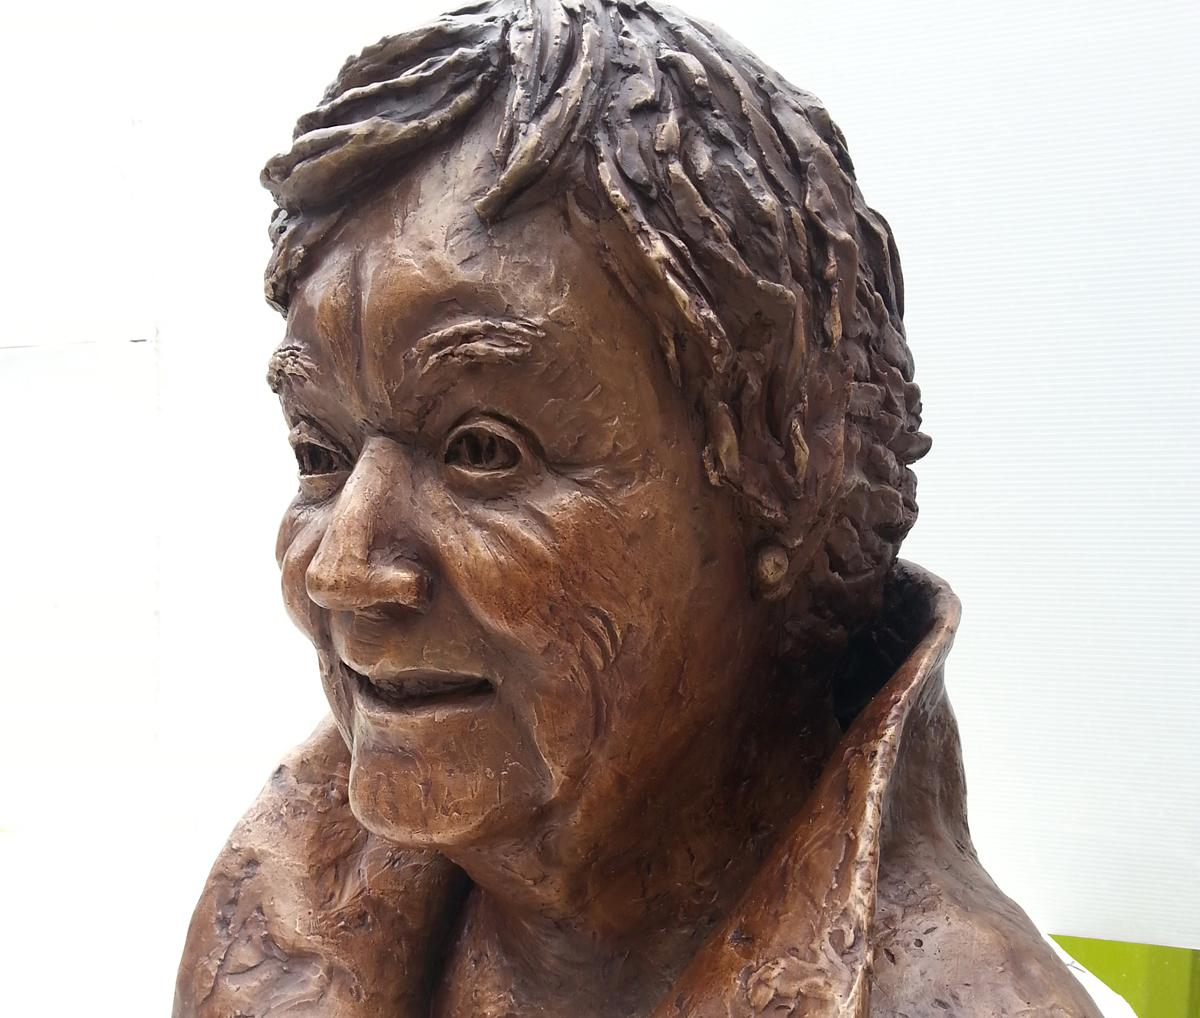 Shenda Amery's bronze sculpture will be unveiled by Princess Katarina of Yugoslavia / Shenda Amery